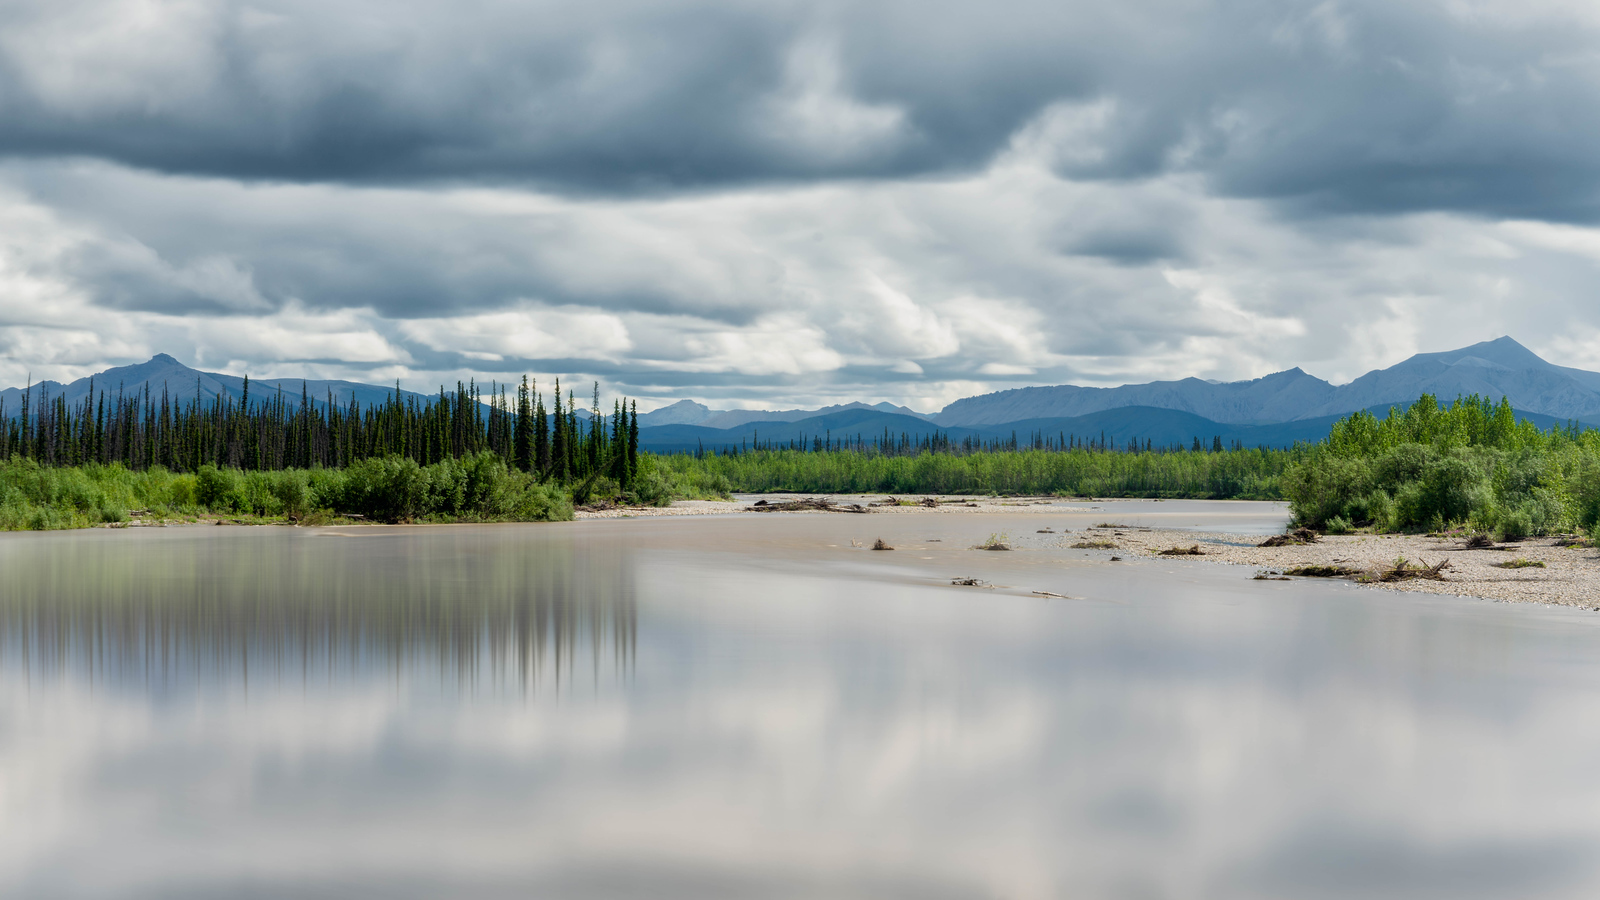 The views were spectacular on the Dempster Highway